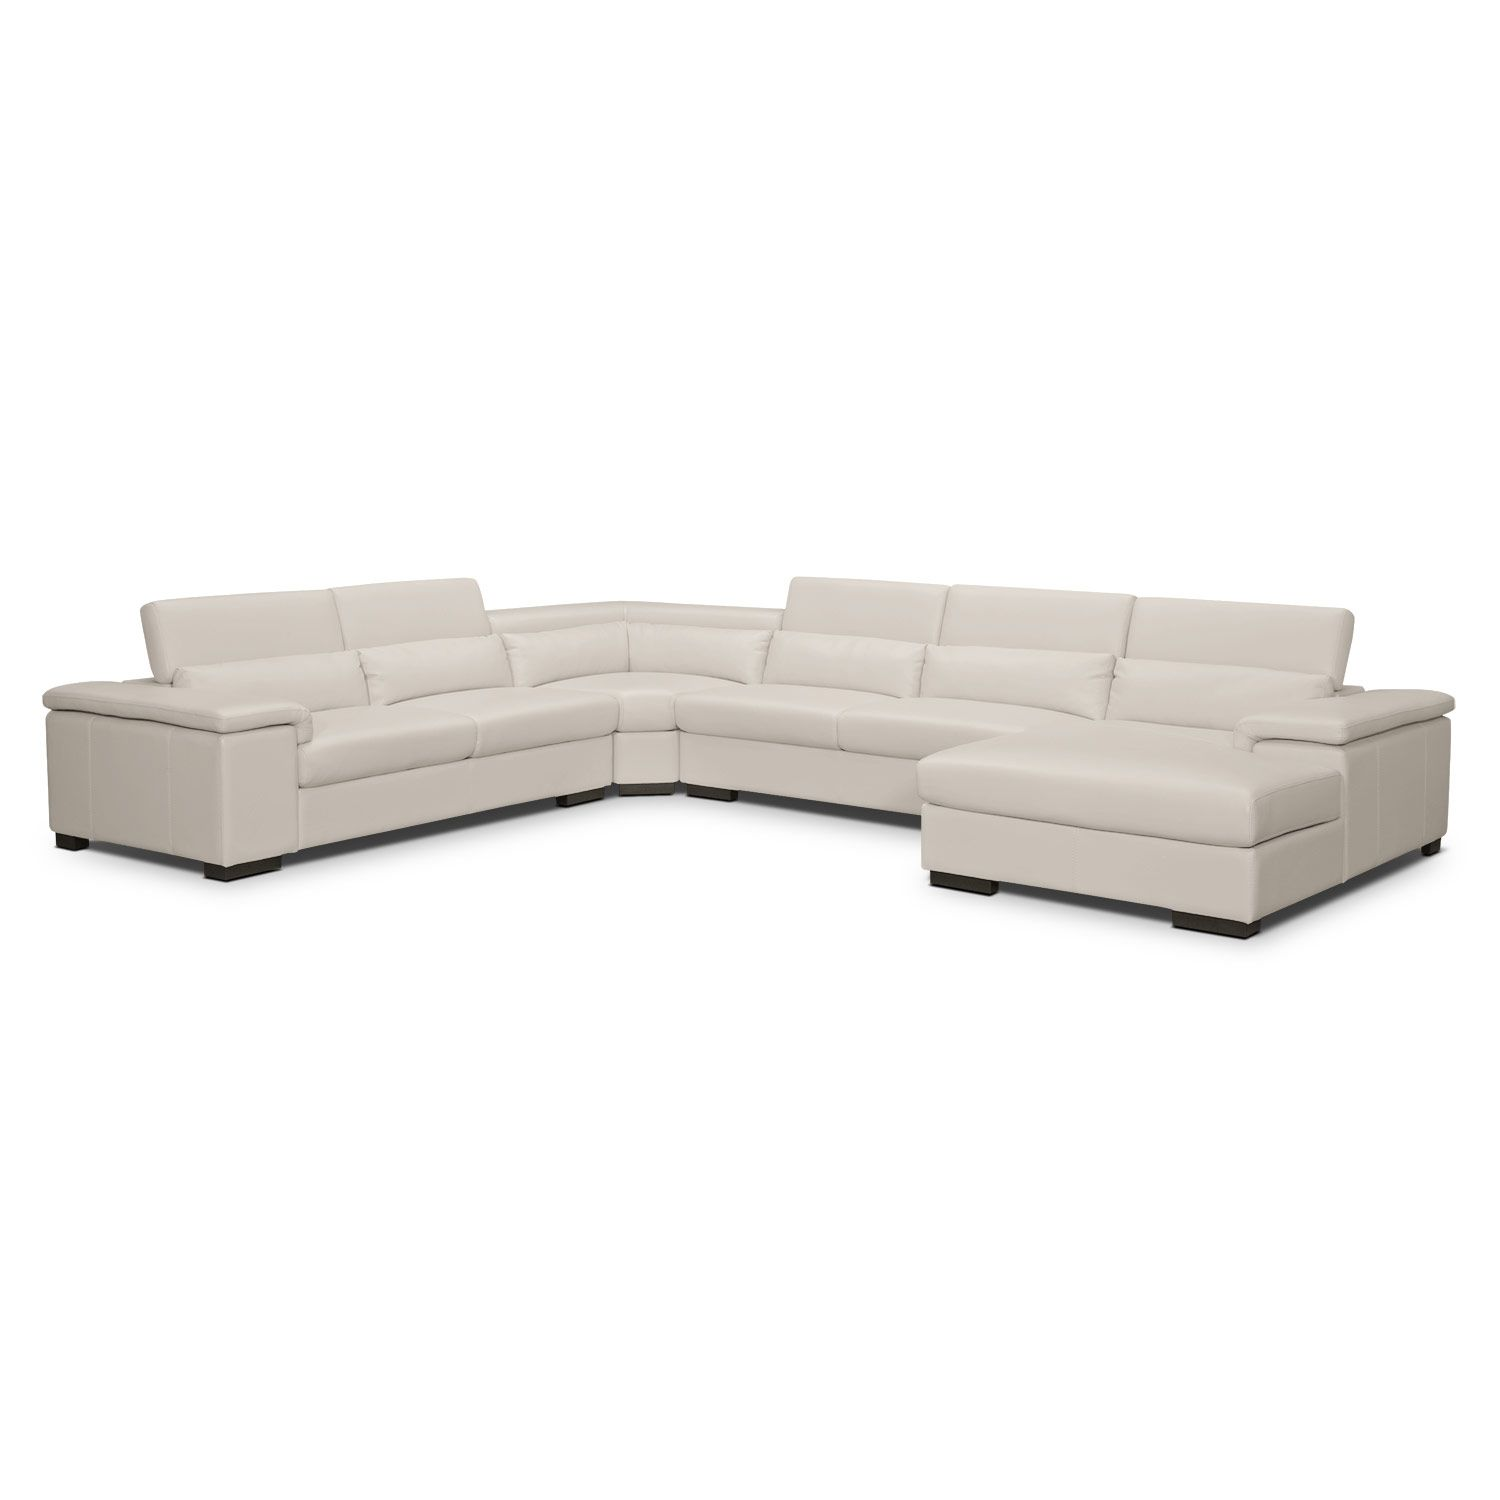 Ventana Leather 4 Pc Sectional Value City Furniture